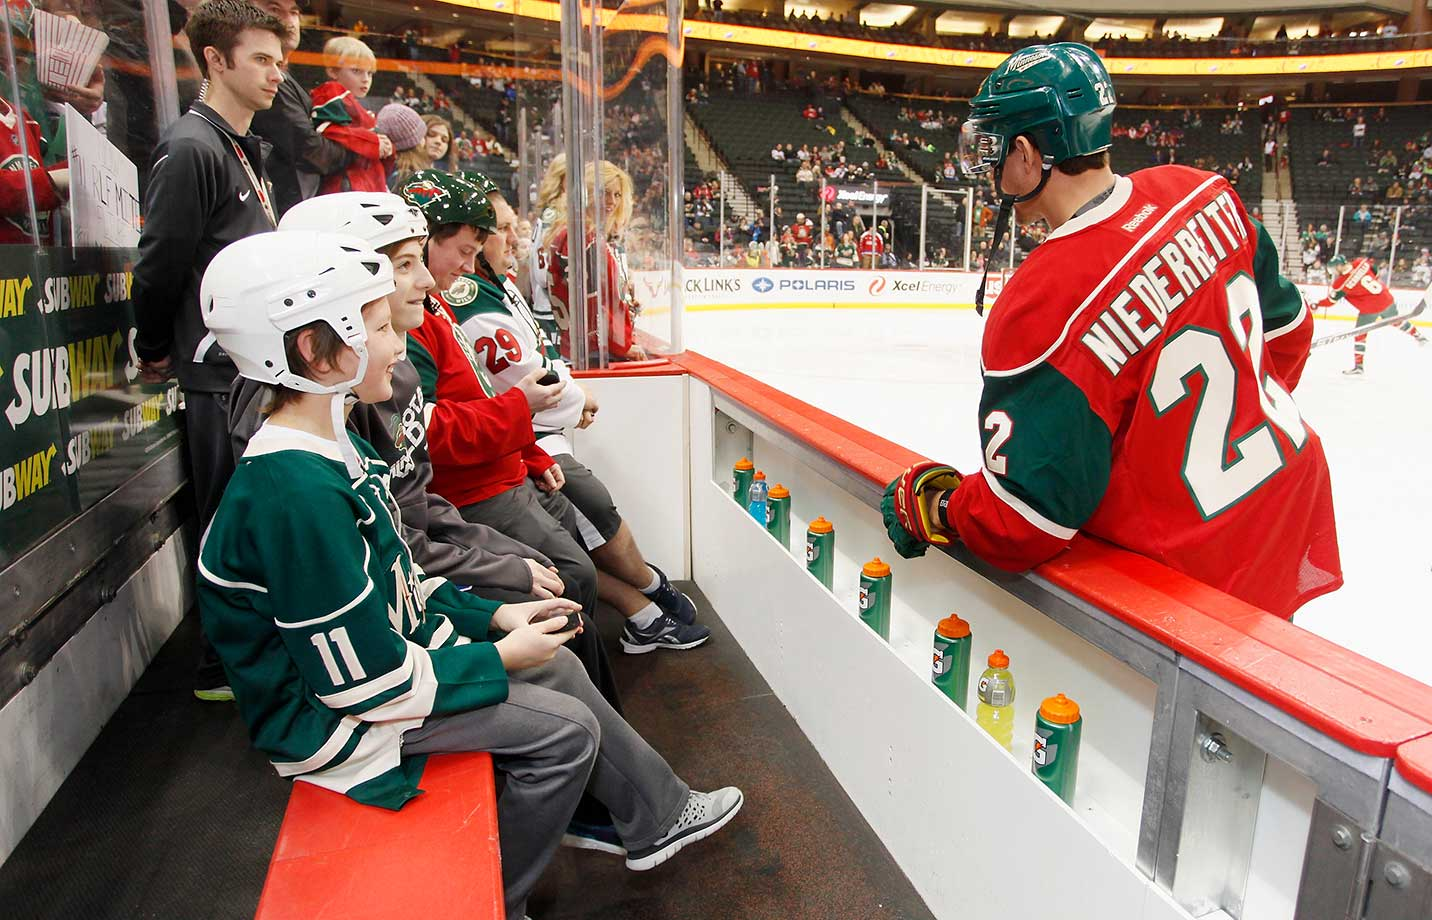 Nino Niederreiter  of the Minnesota Wild talks to a group of young fans prior to the game against the Washington Capitals.